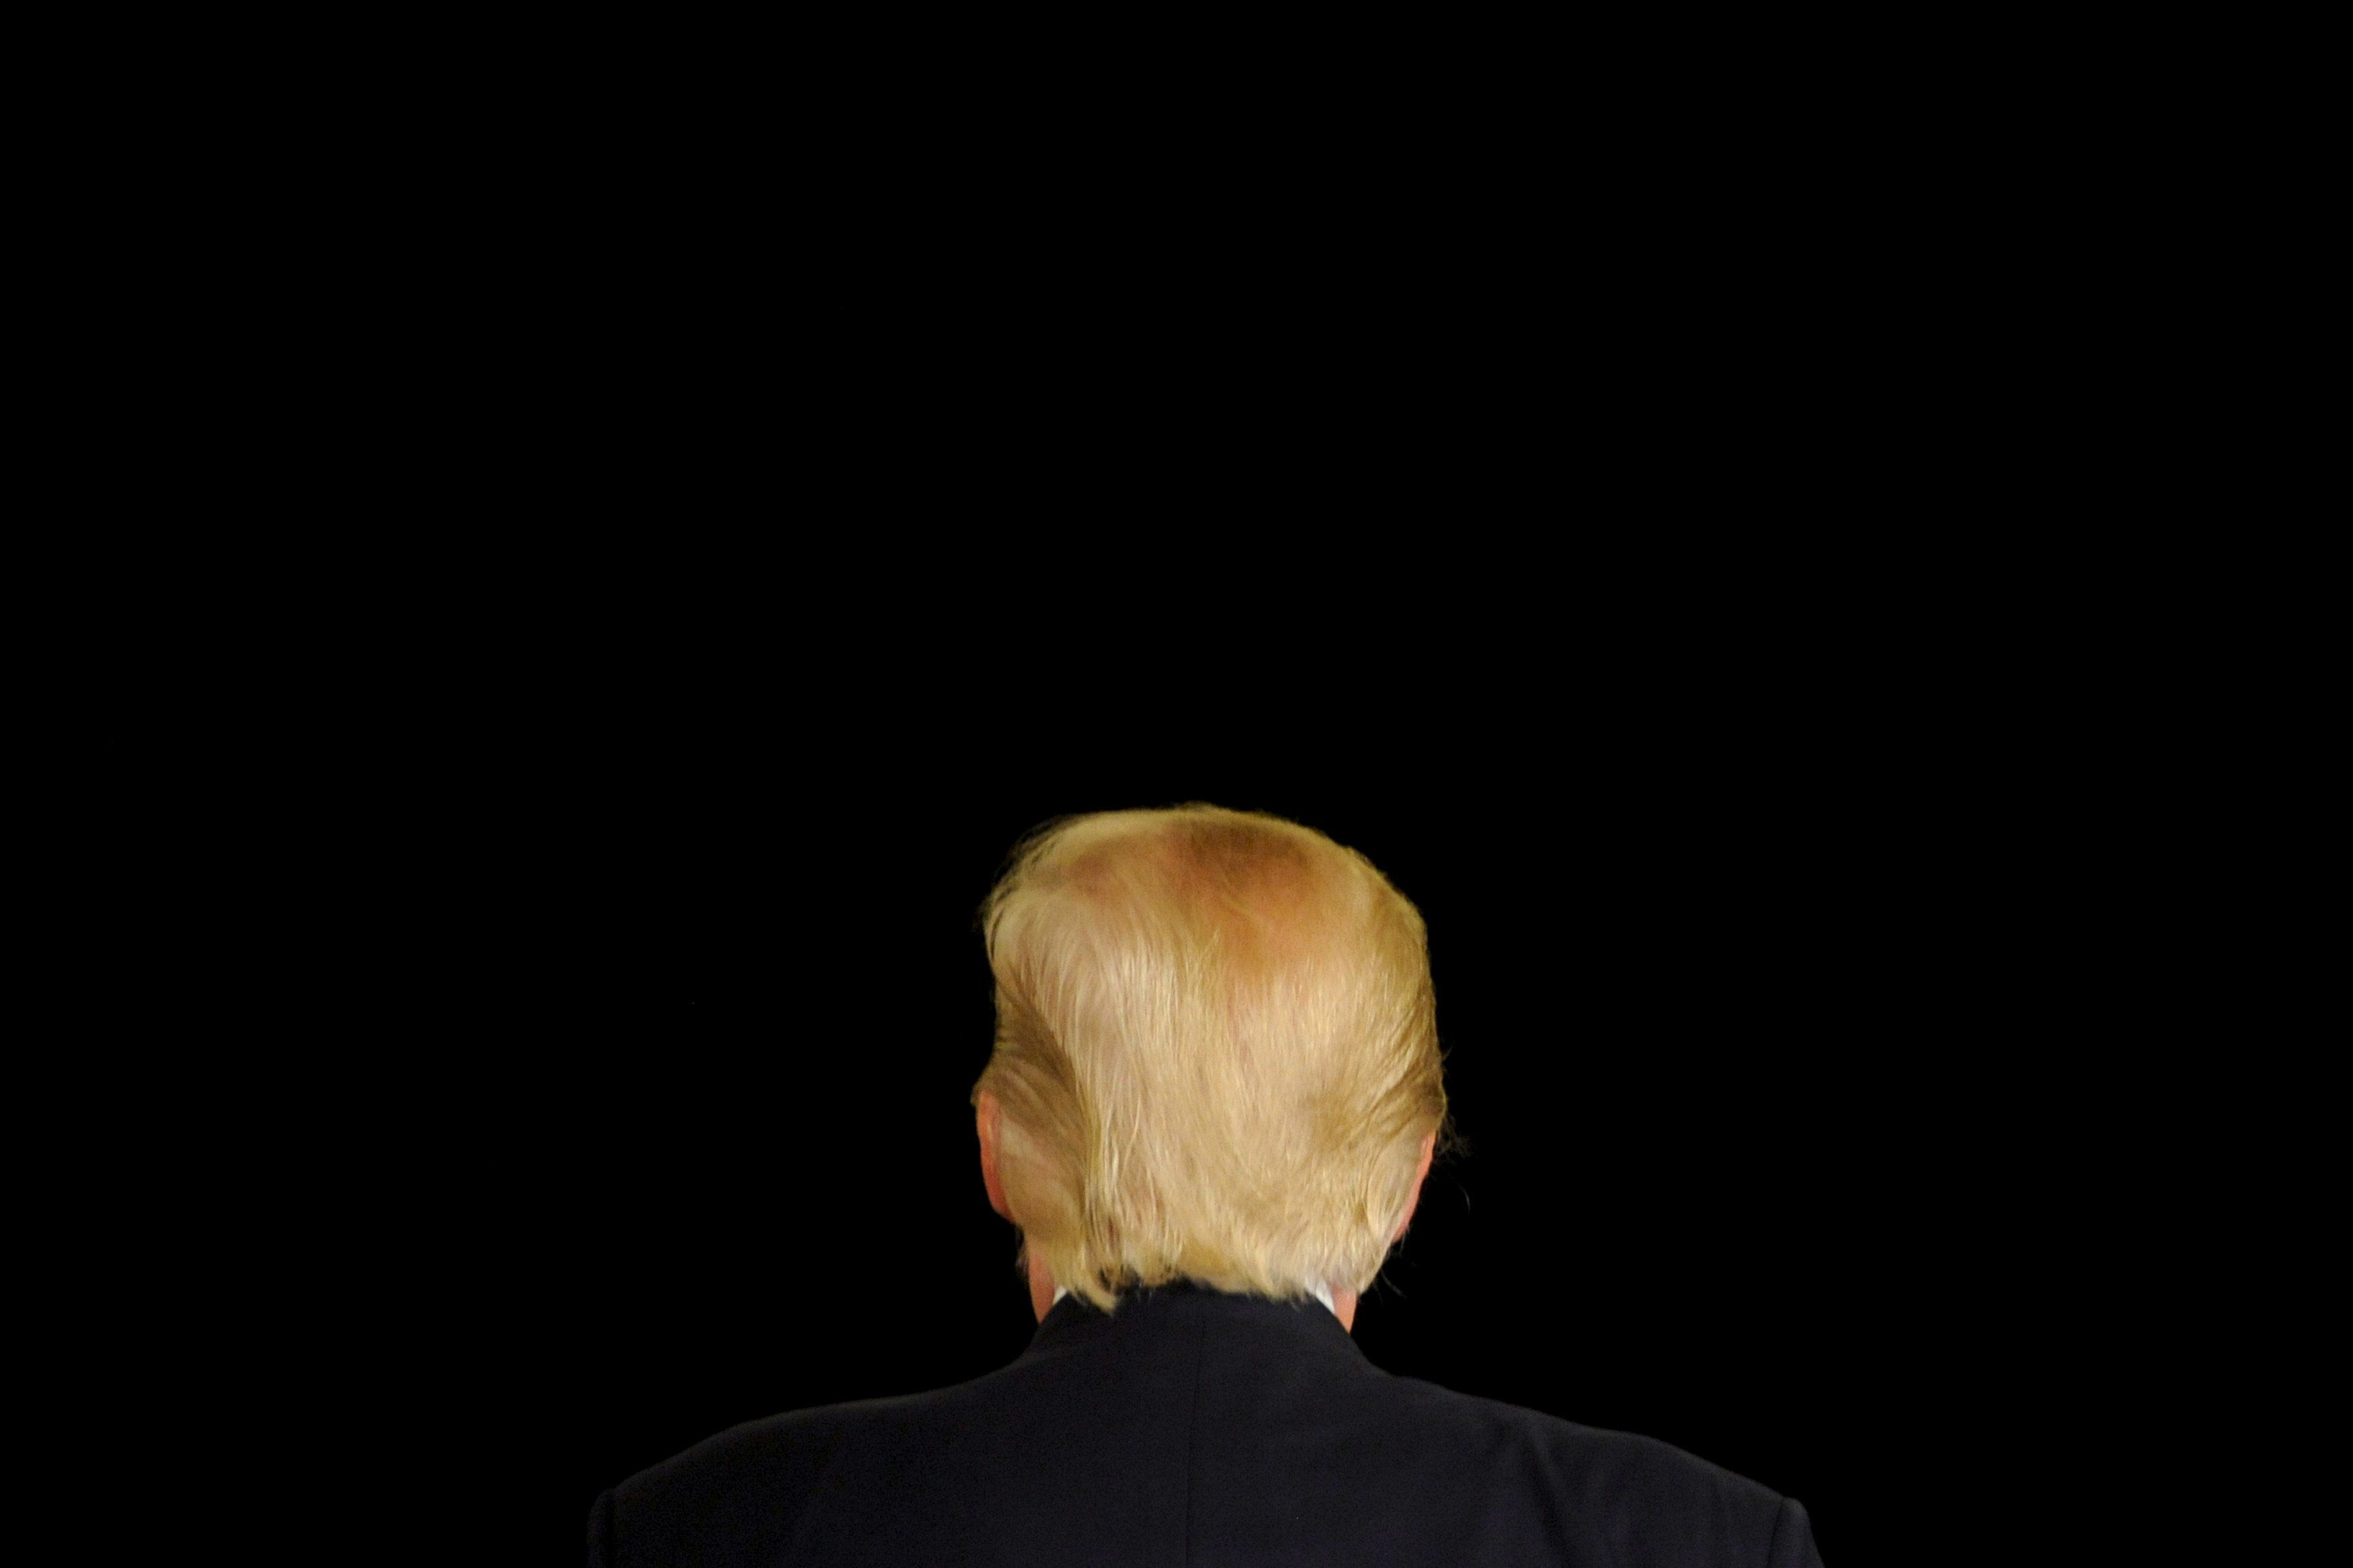 Republican U.S. presidential candidate Donald Trump turns away from the cameras as he speaks at a town hall event in Appleton, Wisconsin, March 30, 2016. REUTERS/Mark Kauzlarich